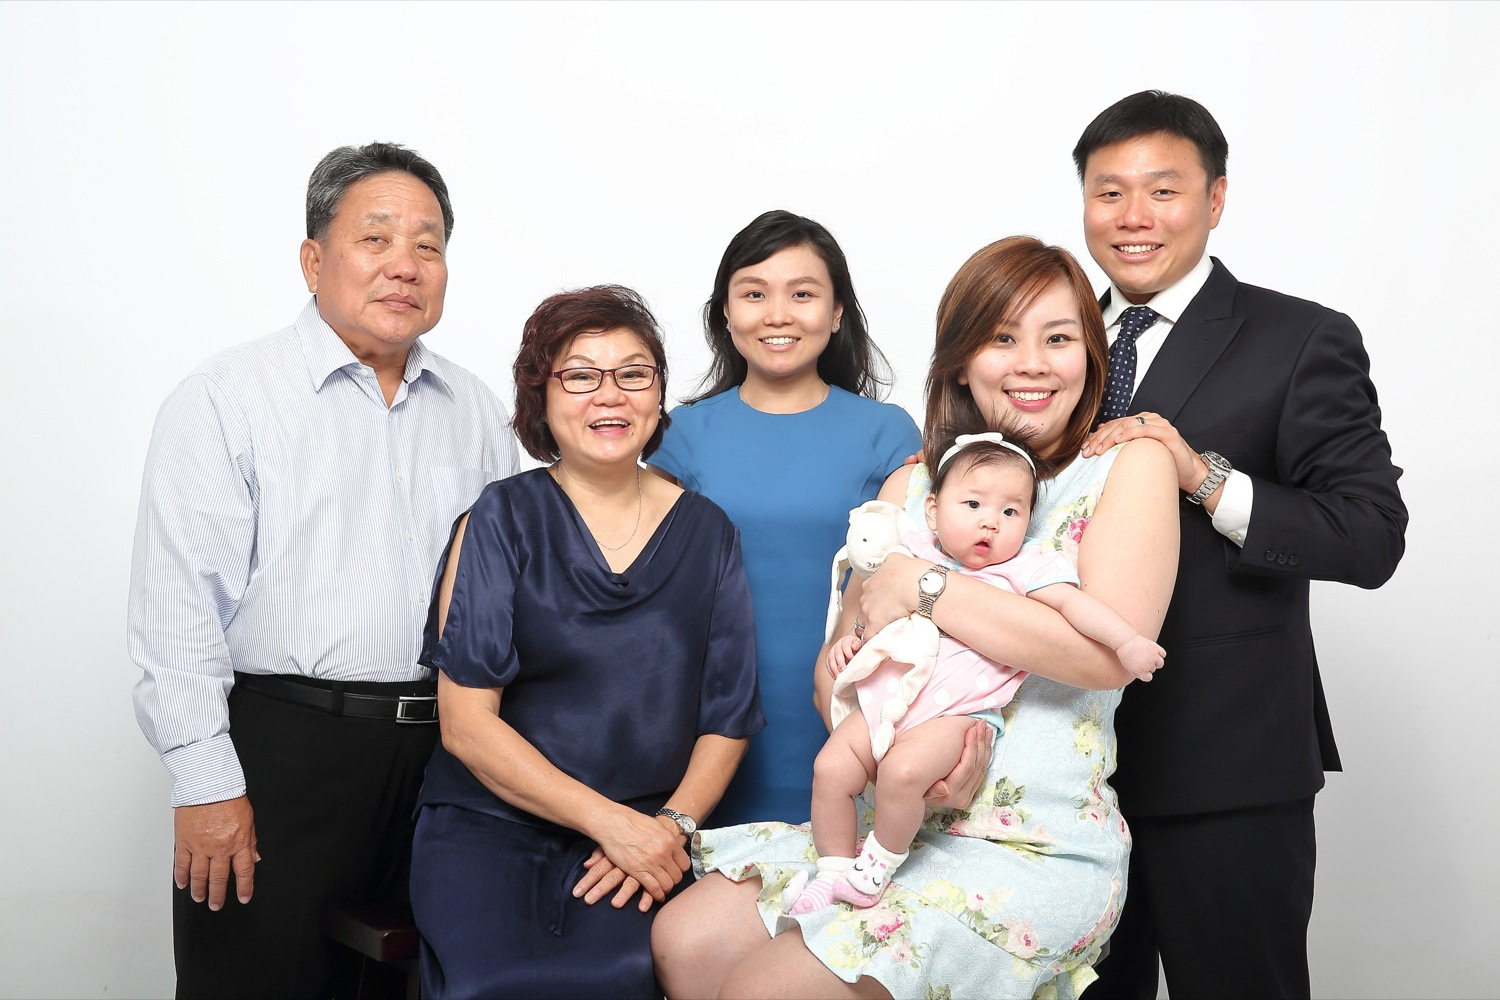 Jonathan's family photo shoot at Mudframes Pictures Studio